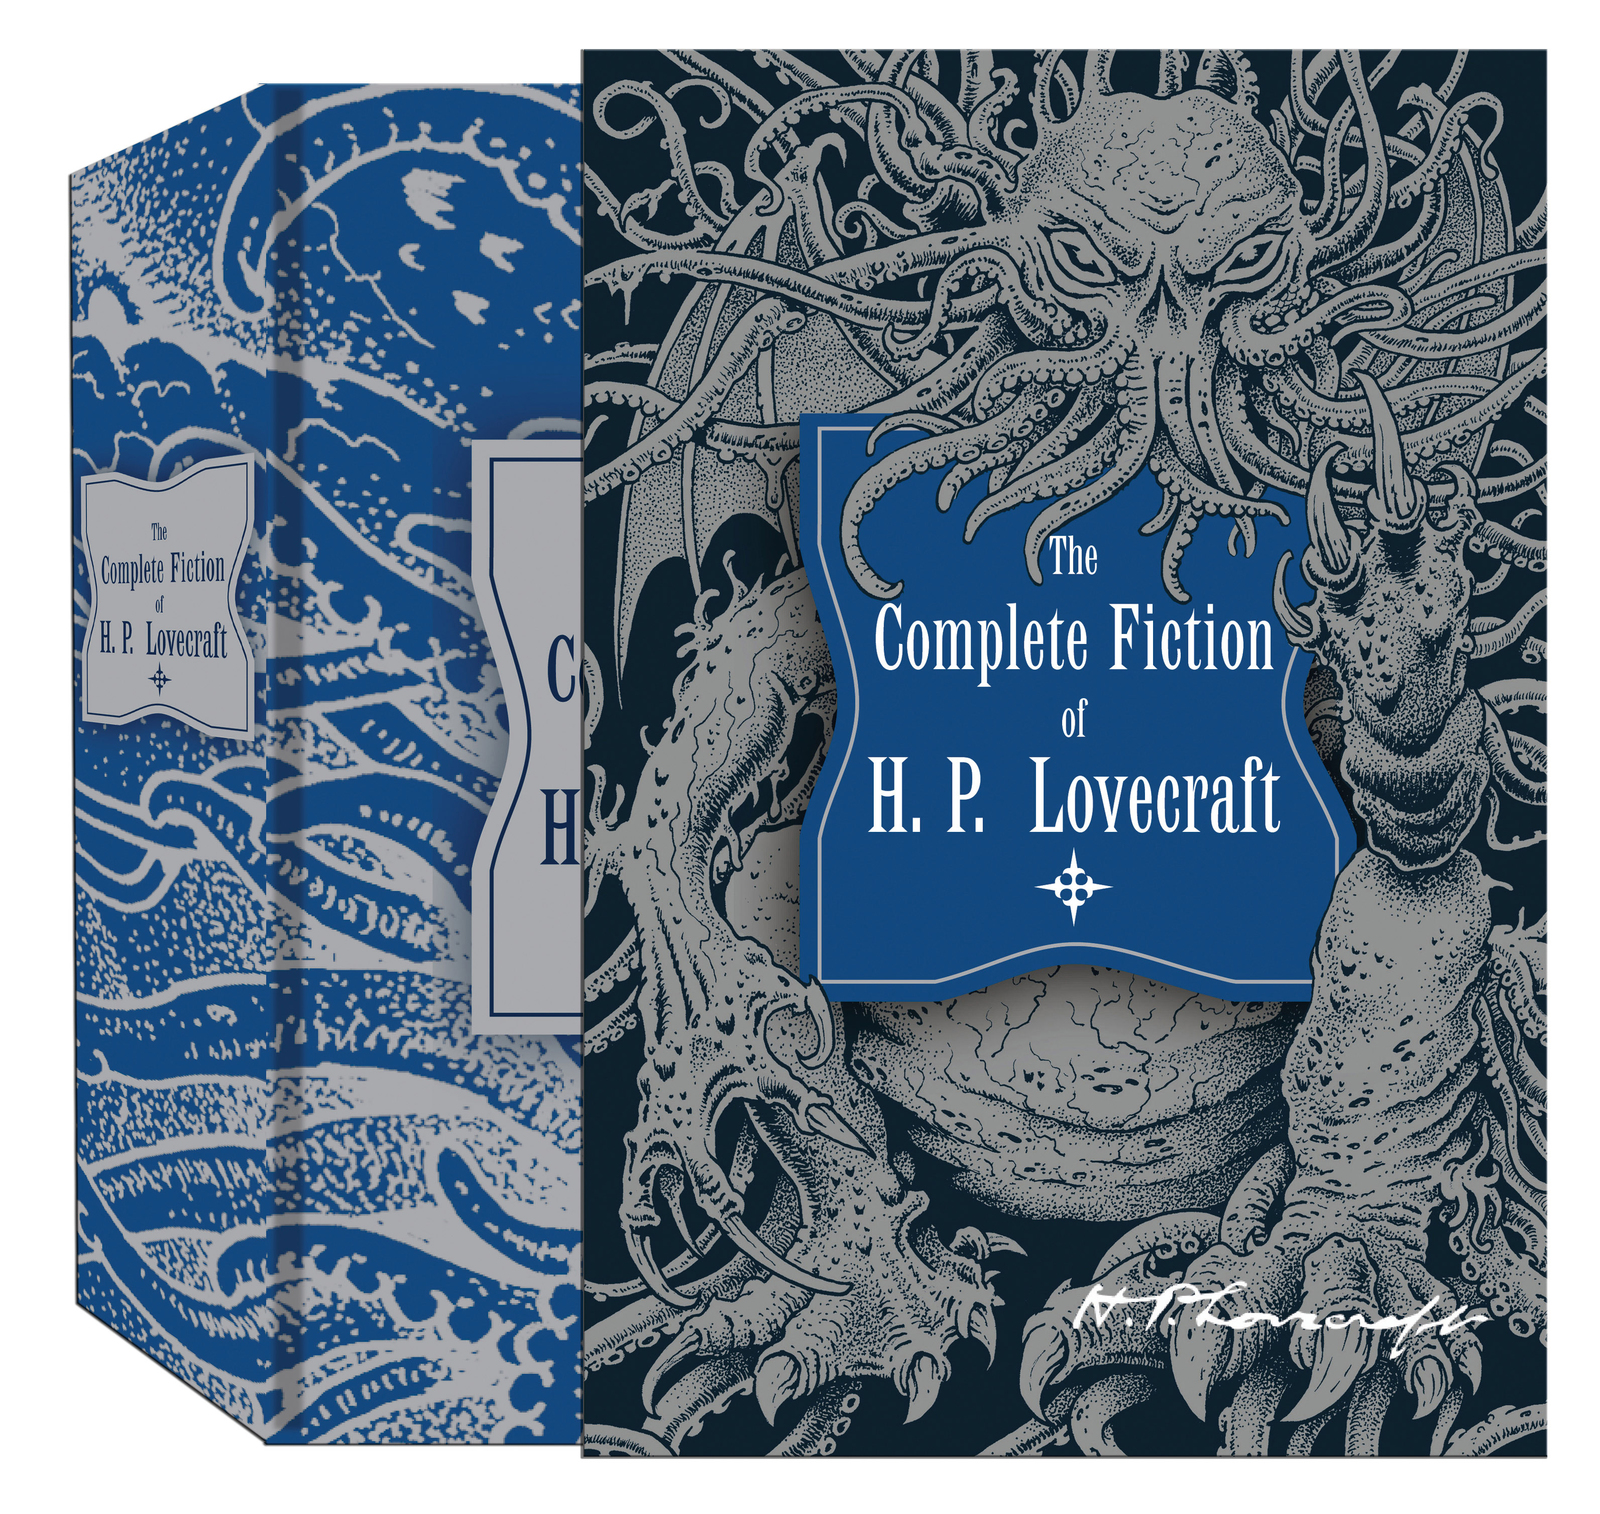 The Complete Fiction of H.P. Lovecraft image